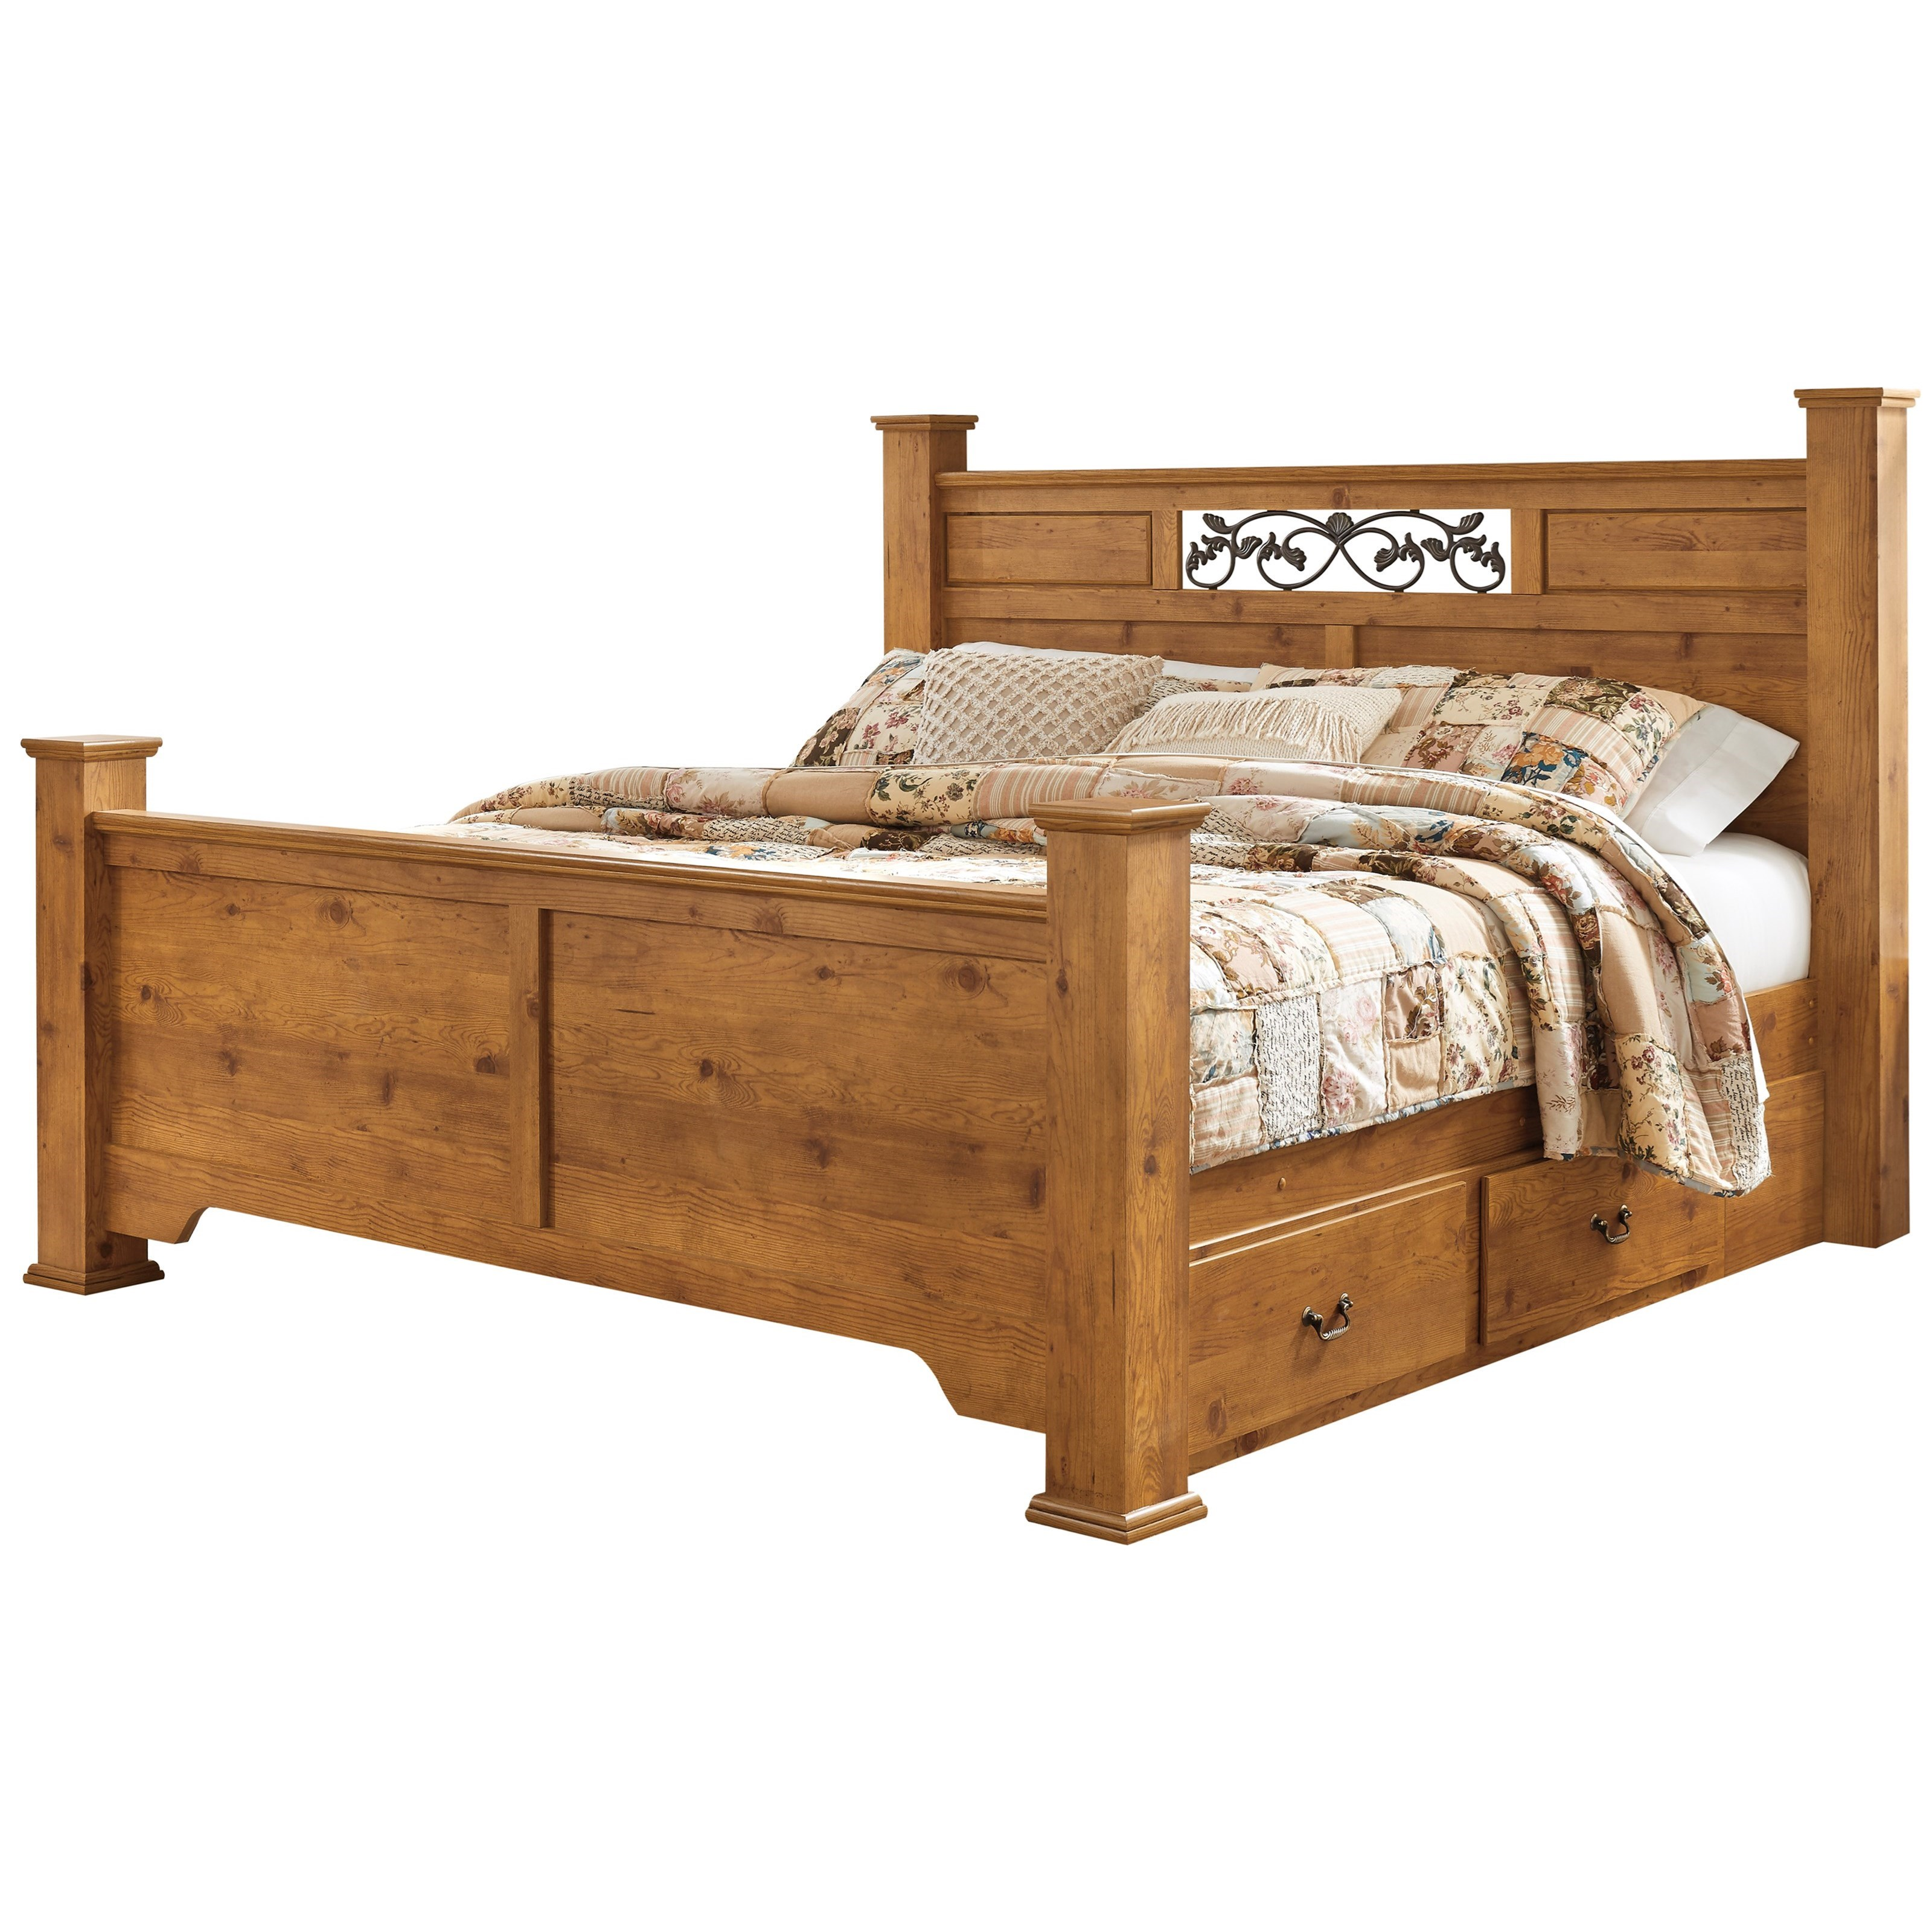 Bittersweet King Poster Bed with Storage by Signature Design by Ashley at Zak's Warehouse Clearance Center